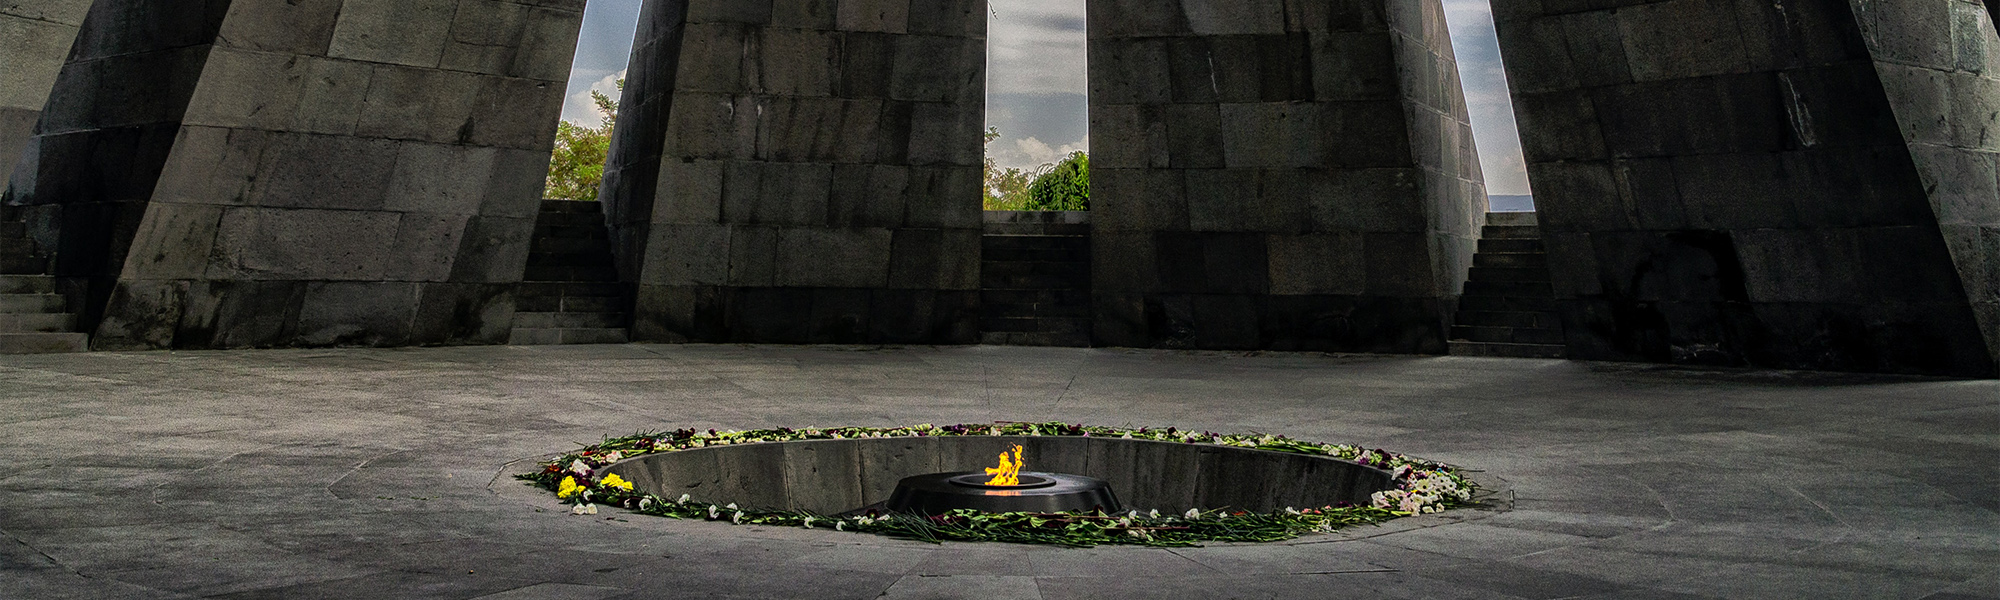 armenian eternal flame